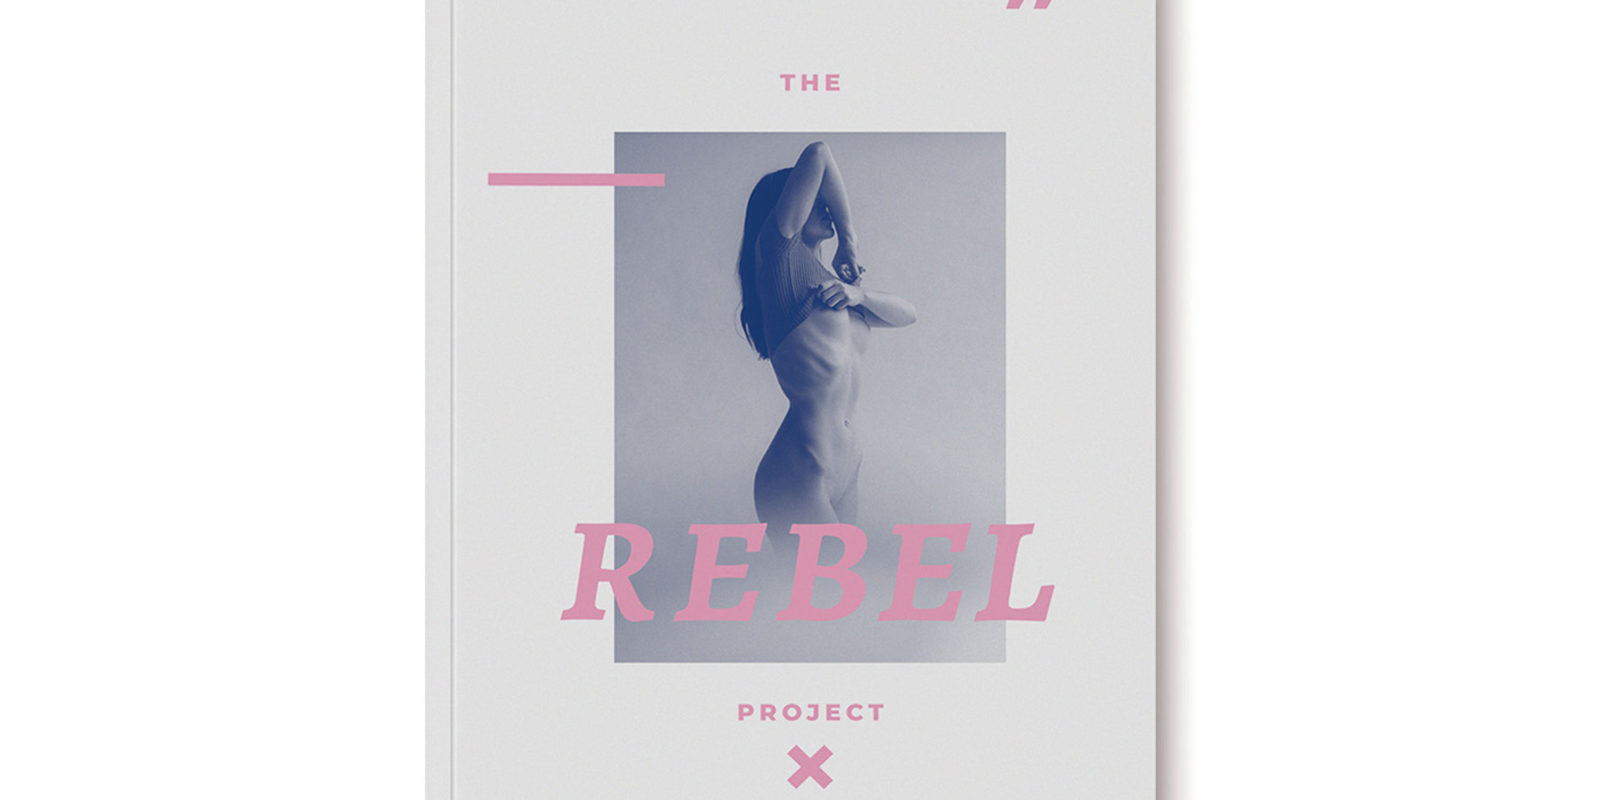 THE REBEL PROJECT – the second Photobook by German Photographer Kai-Hendrik Schroeder